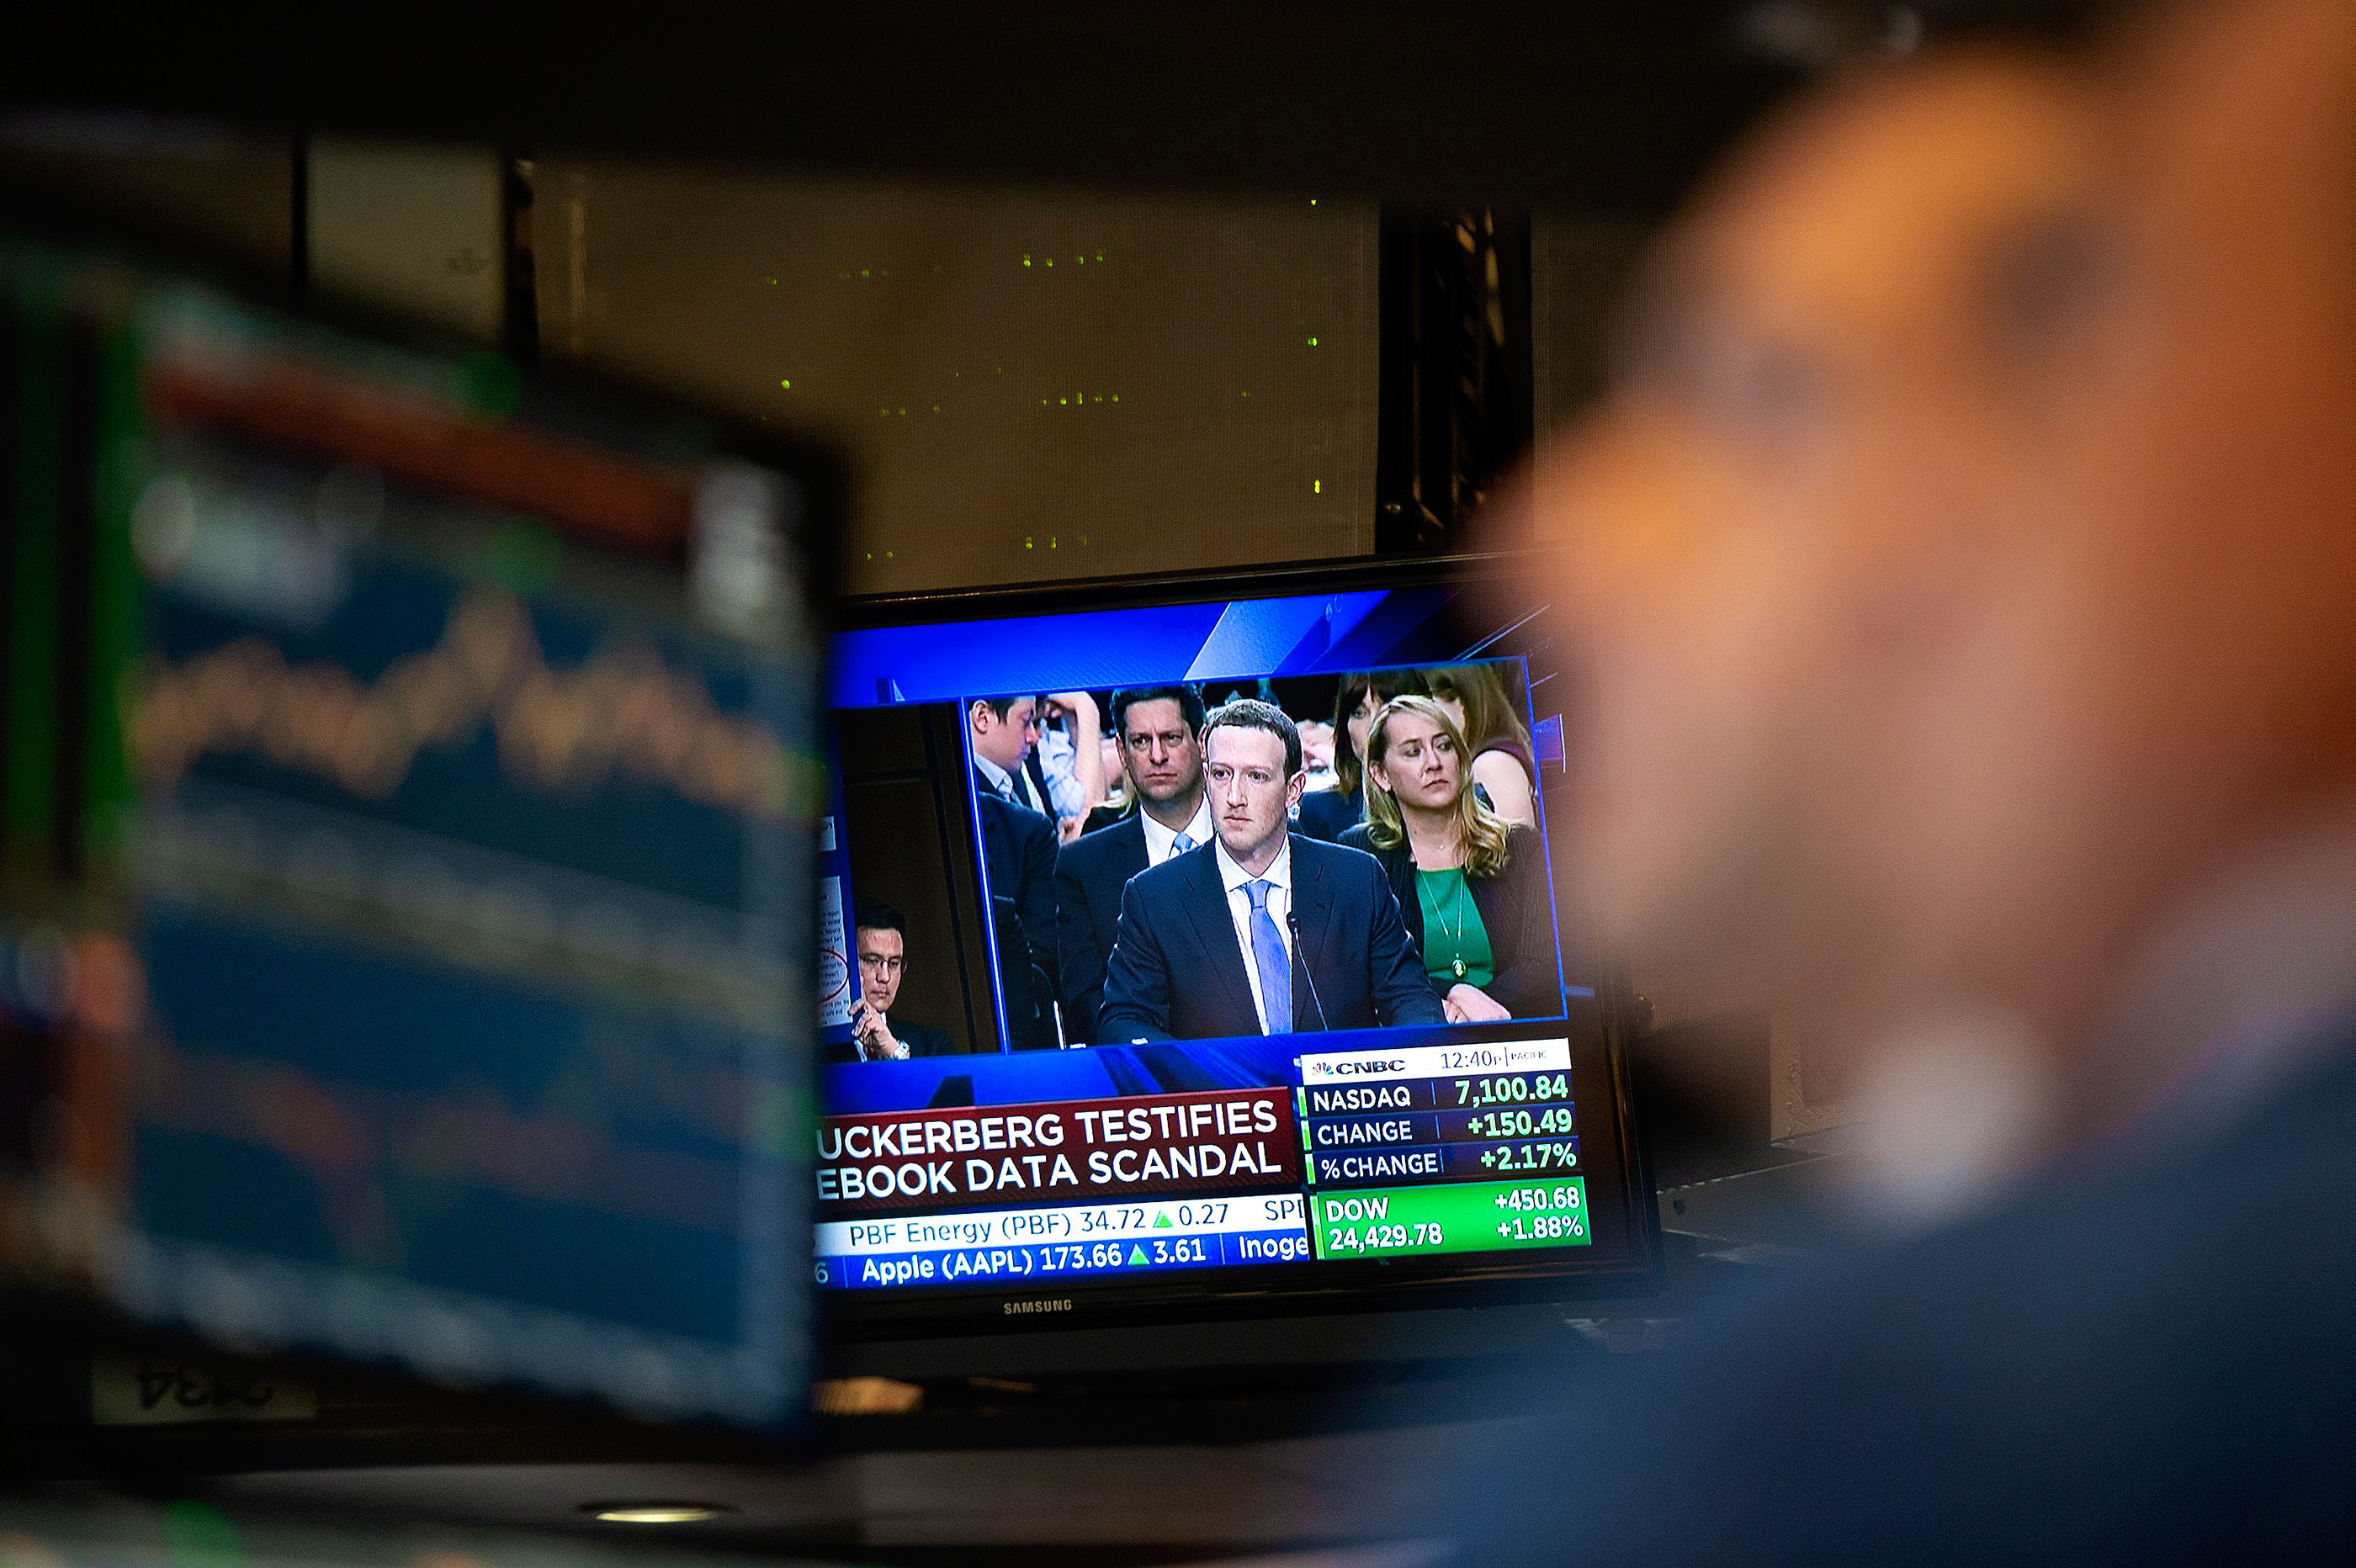 CNBC airs Facebook CEO Mark Zuckerberg's congressional testimony on a data scandal that hit the social media giant.